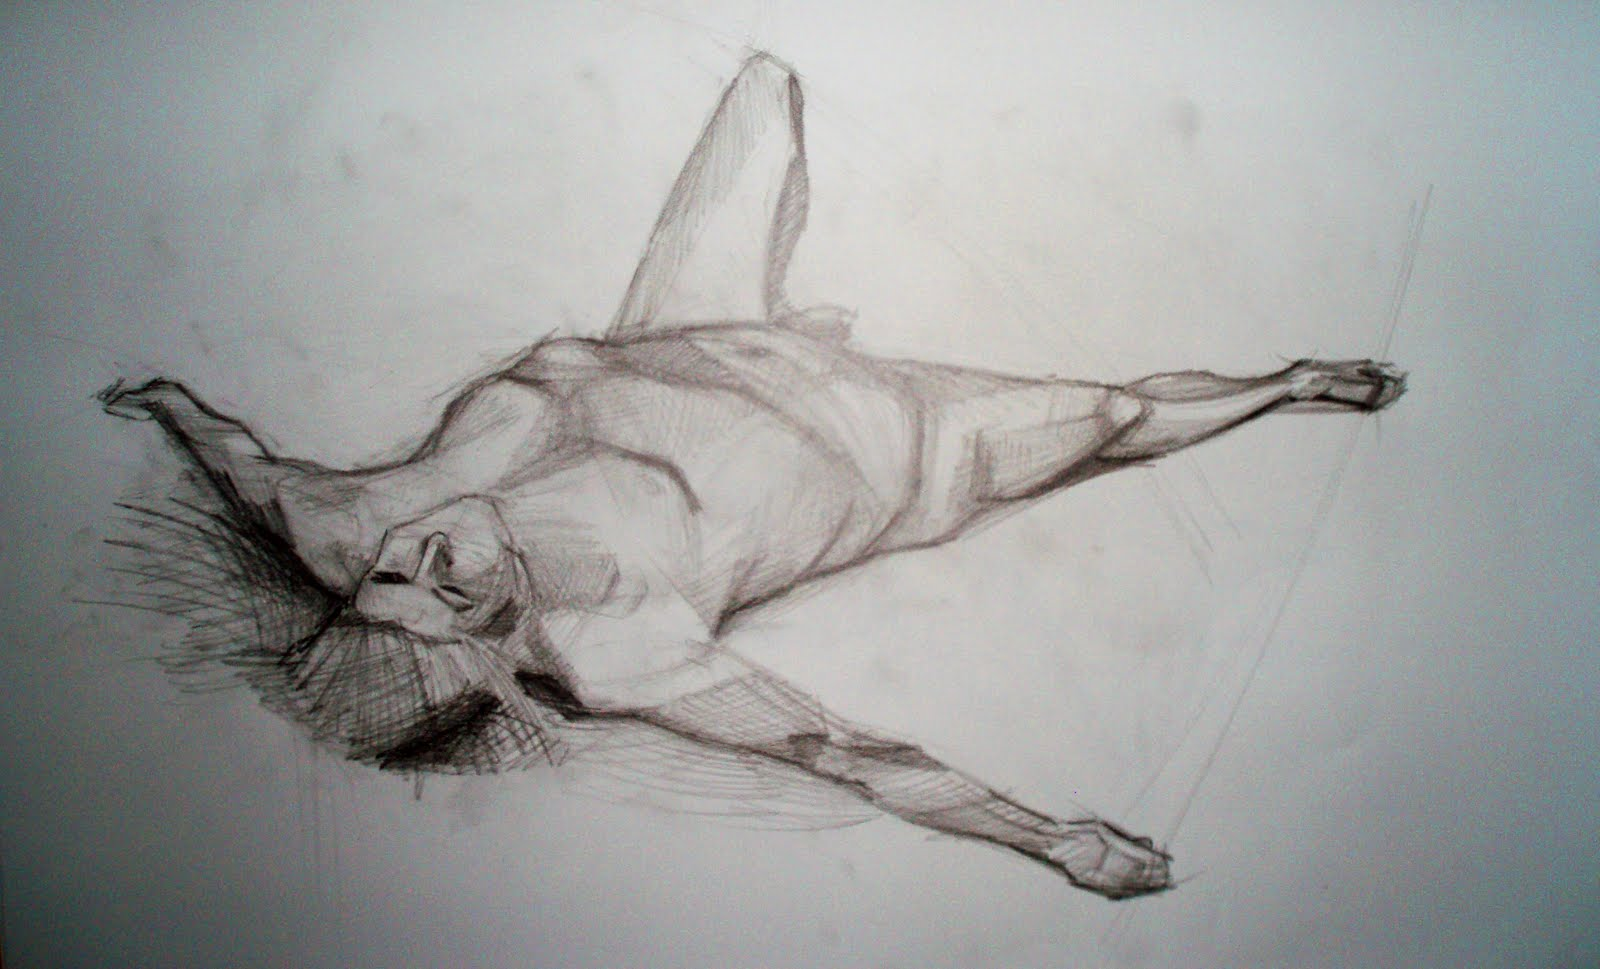 Yolantele Life Drawing Human Figure In Perspective